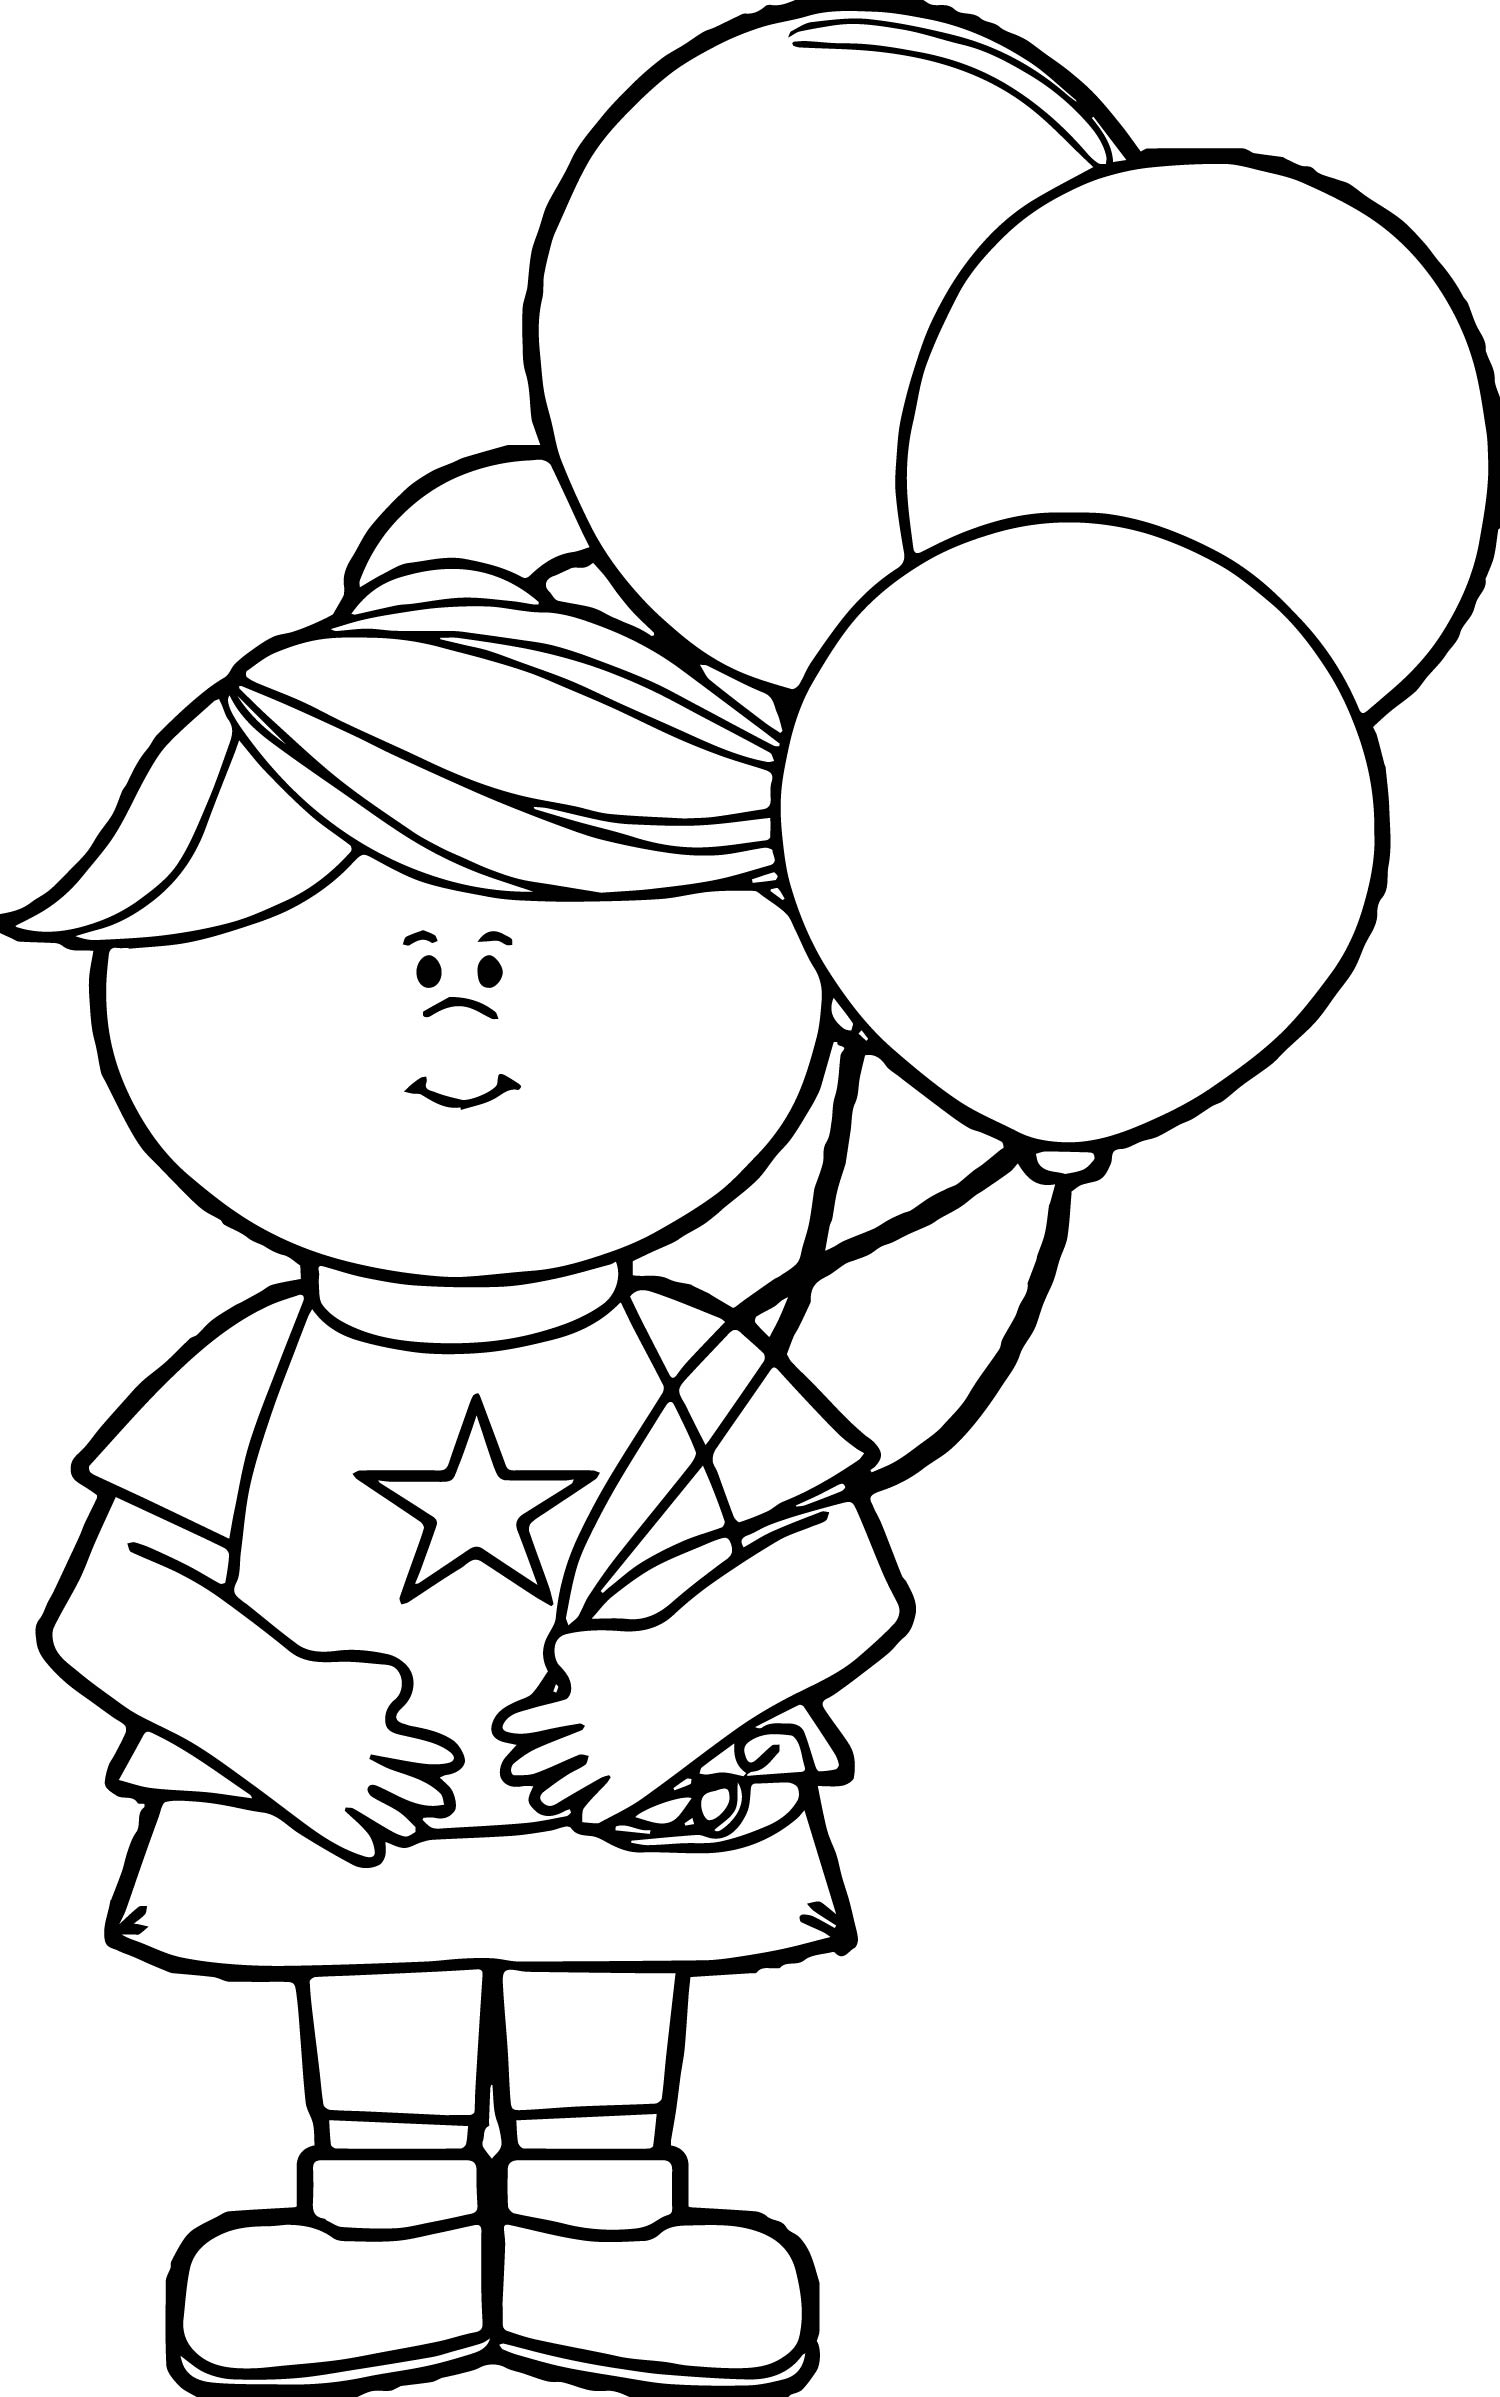 balloons to color balloons coloring pages 4 coloring pages to color balloons